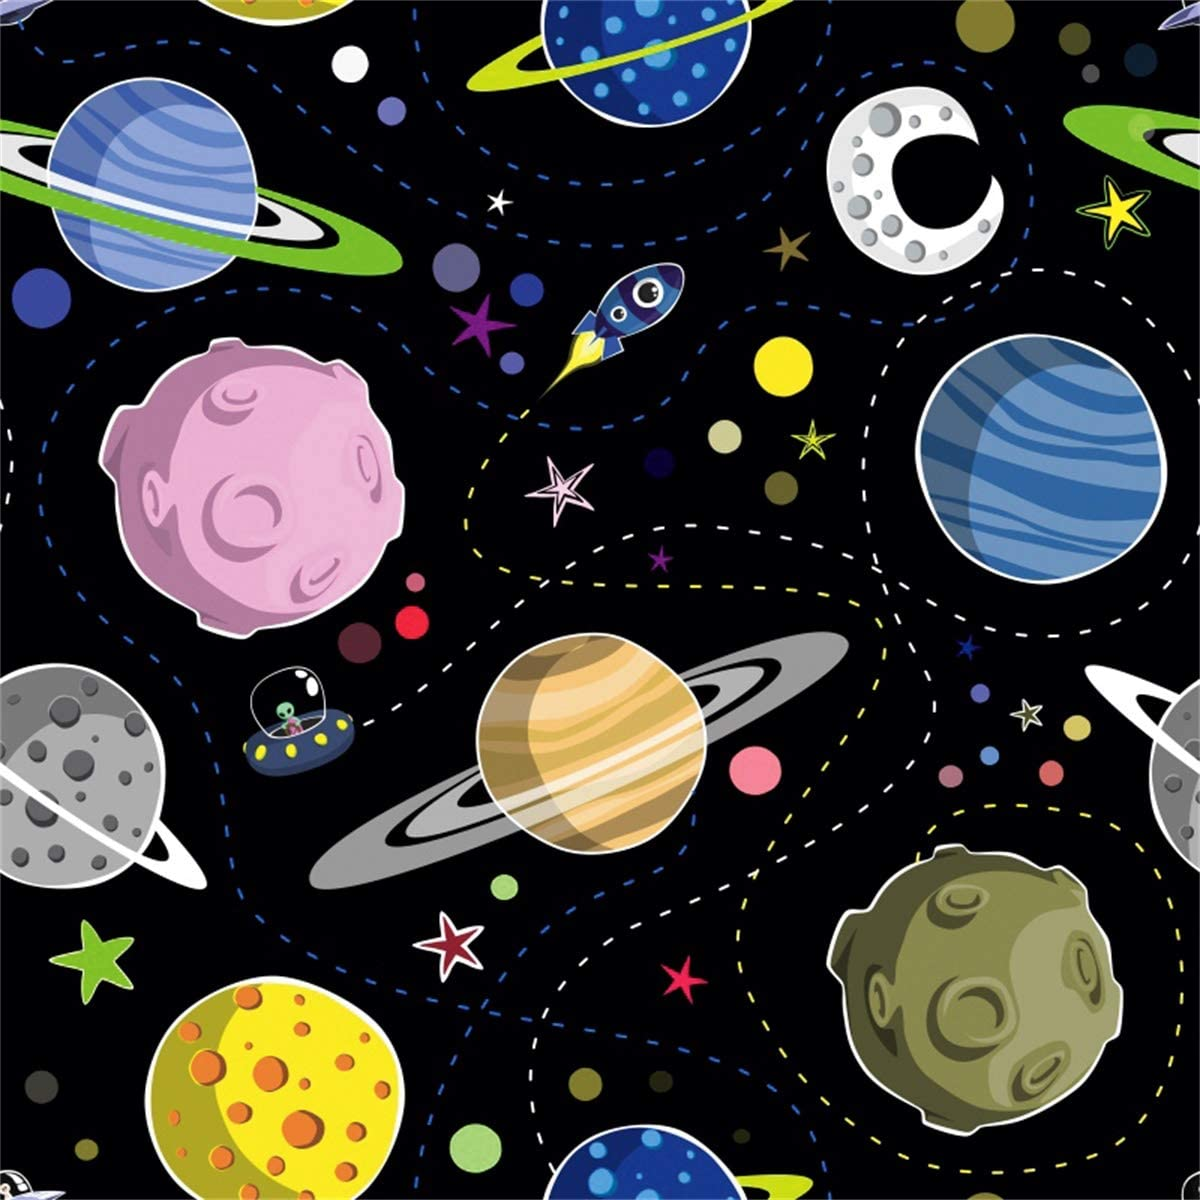 YEELE 10x10ft UFO Alien Ship Backdrop Star Space Univers UFO Cartoon Pattern Photography Background Outer Space Theme Kids Birthday Party Decor Toddler Boys Artistic Portrait Photo Booth Props